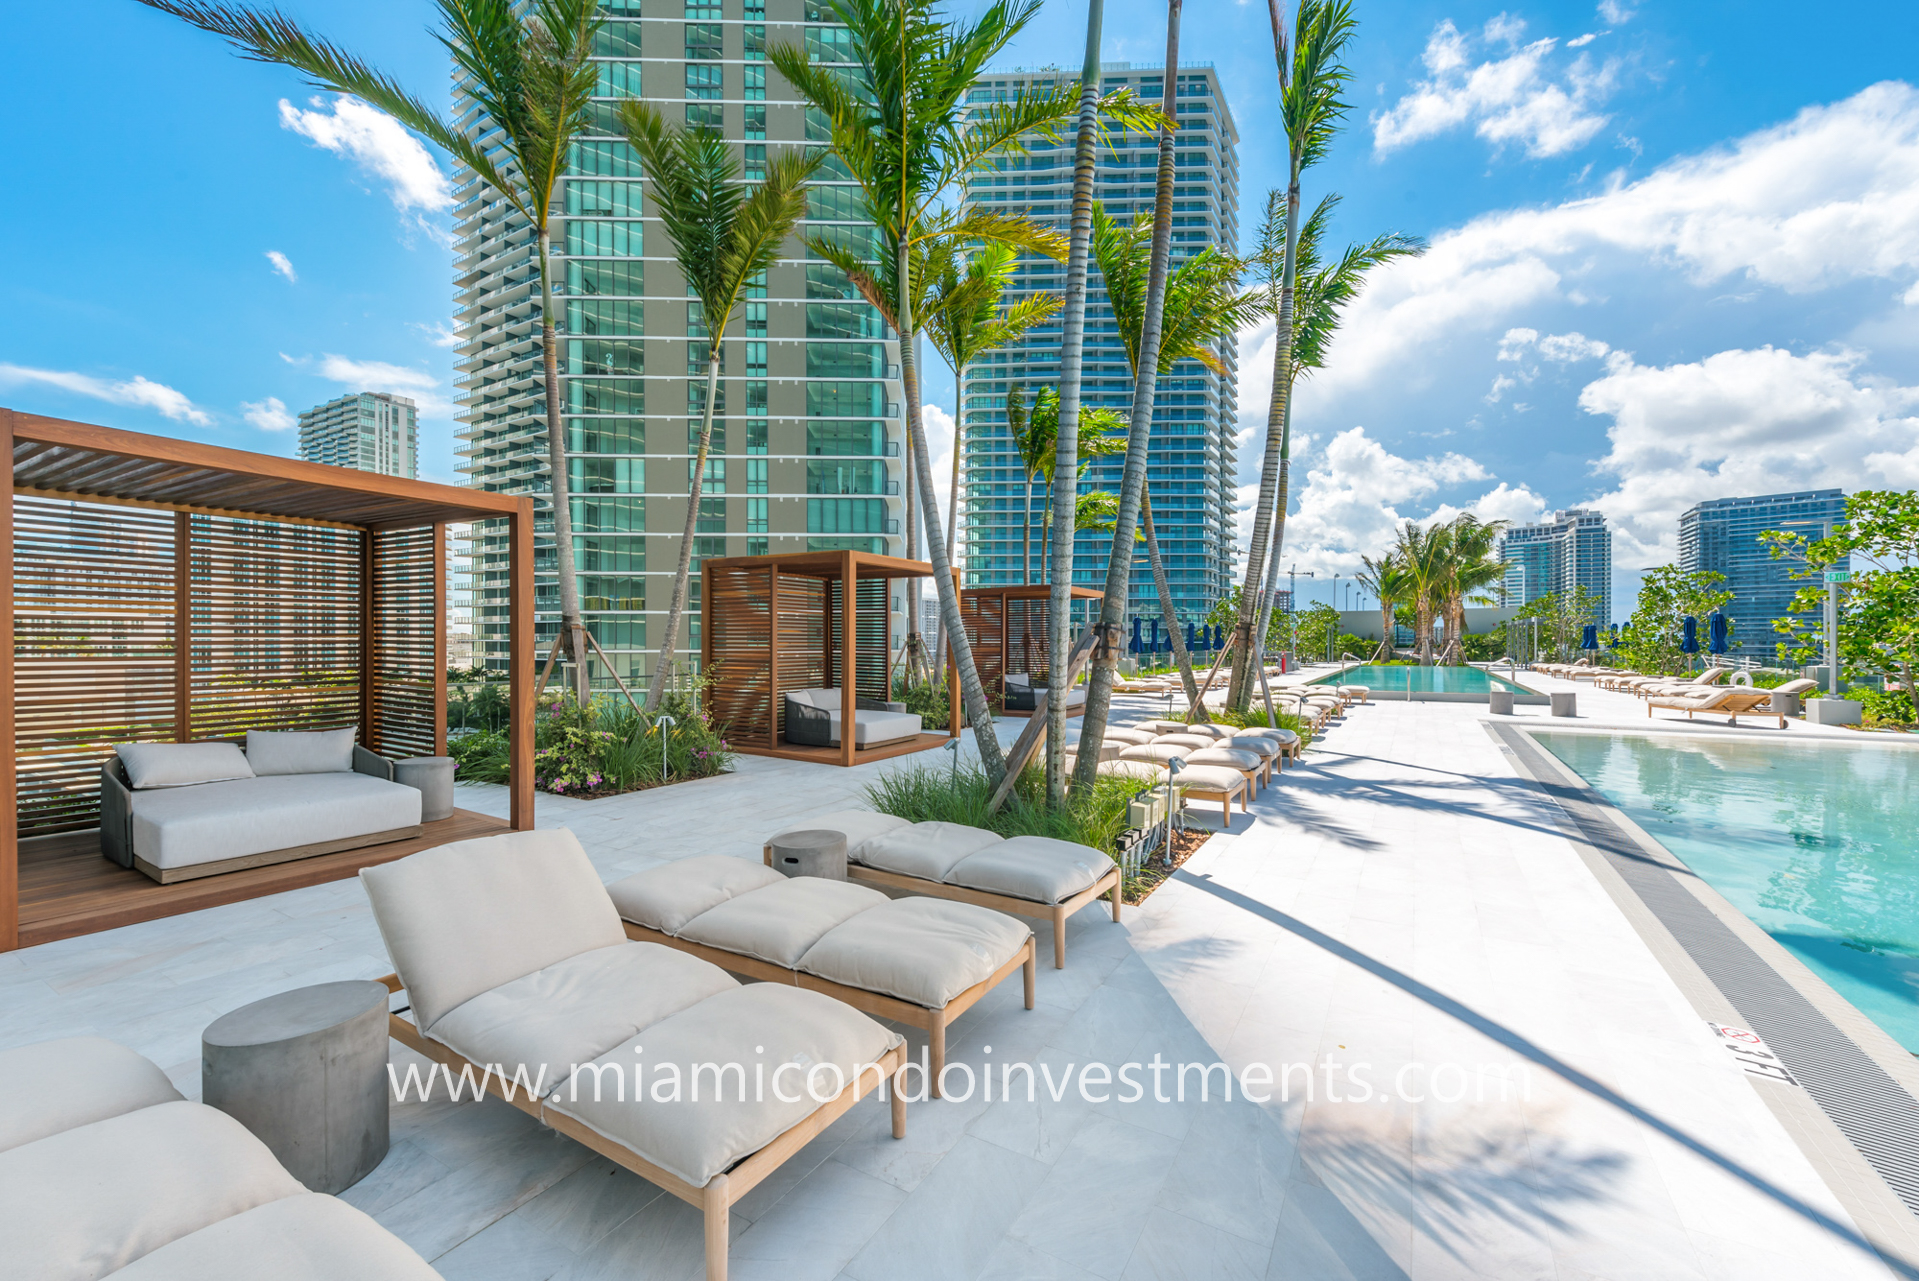 pool deck with cabanas